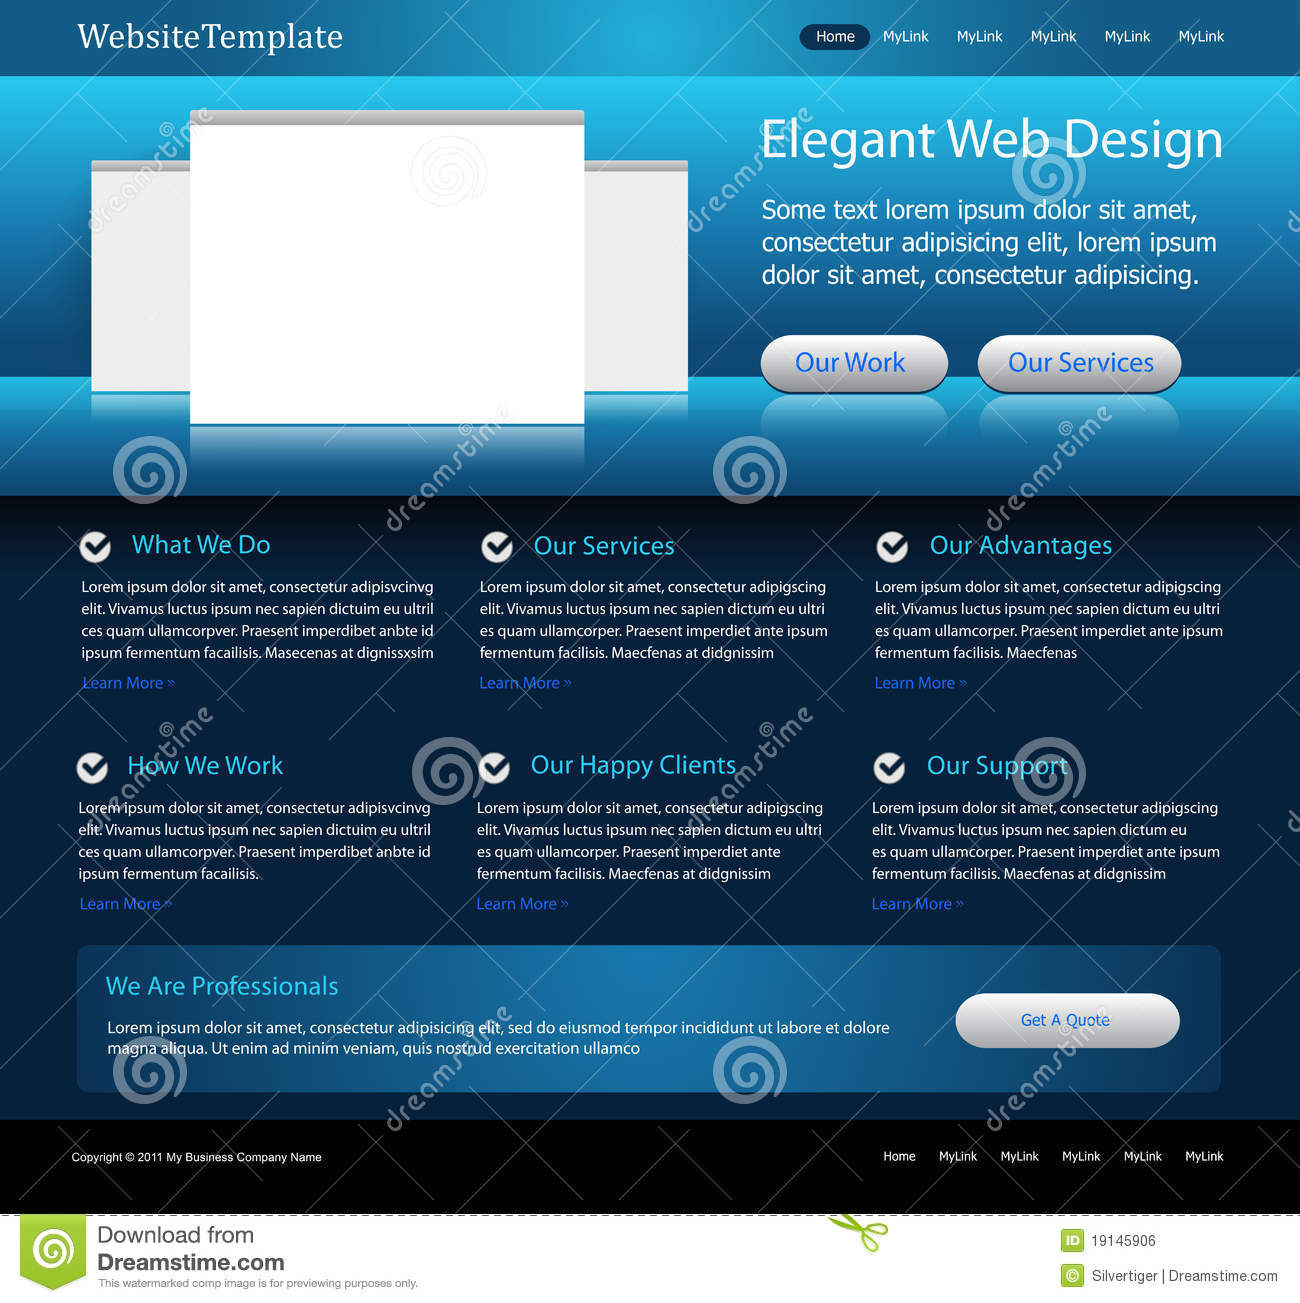 How To Design A Professional Website In Dreamweaver